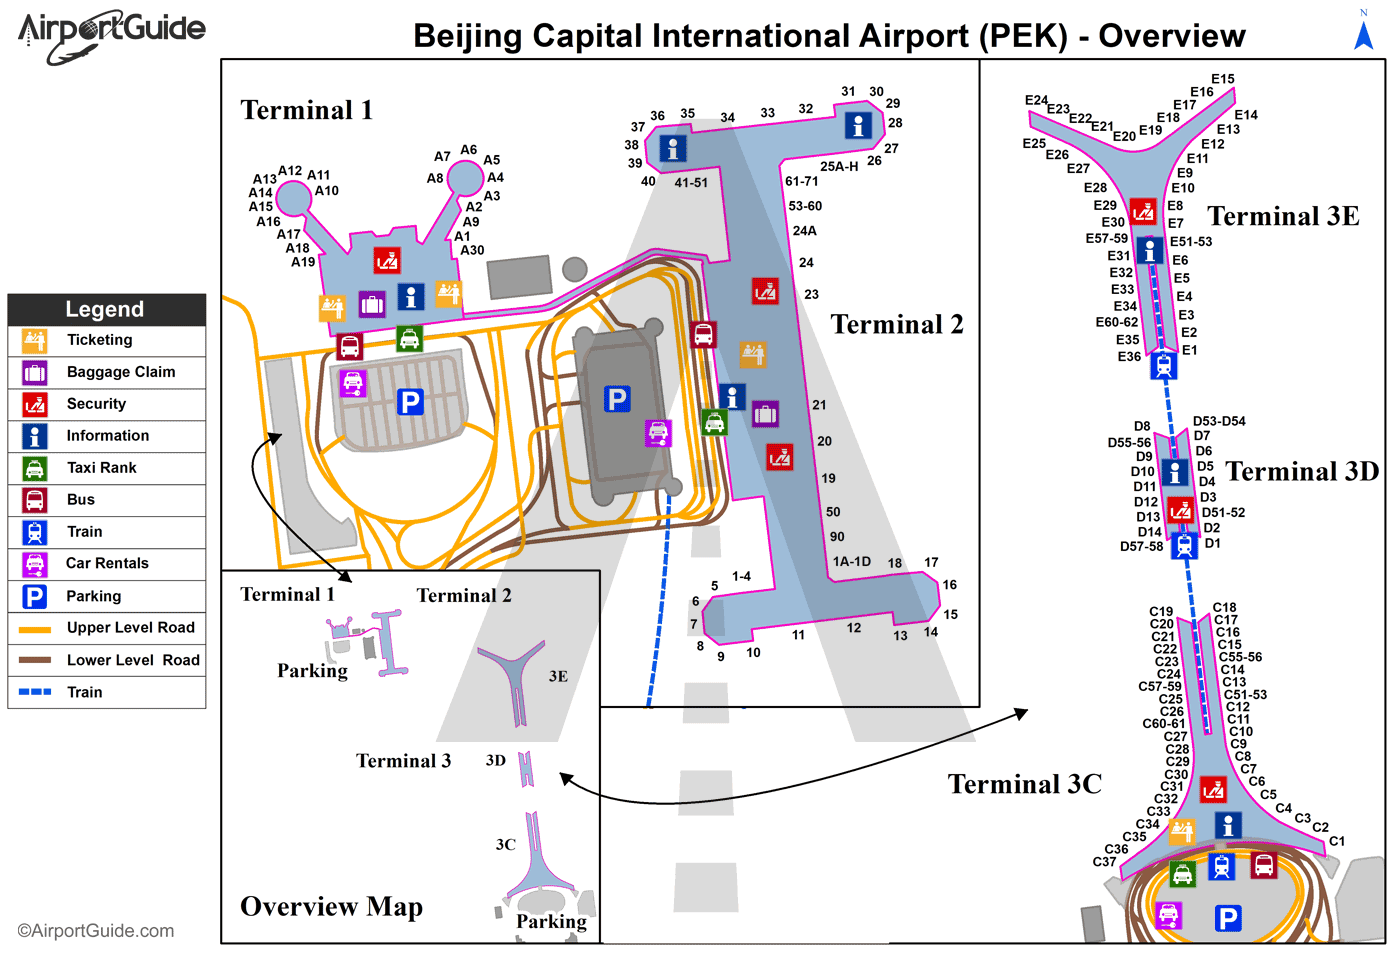 Beijing - Beijing Capital International (PEK) Airport Terminal Map - Overview